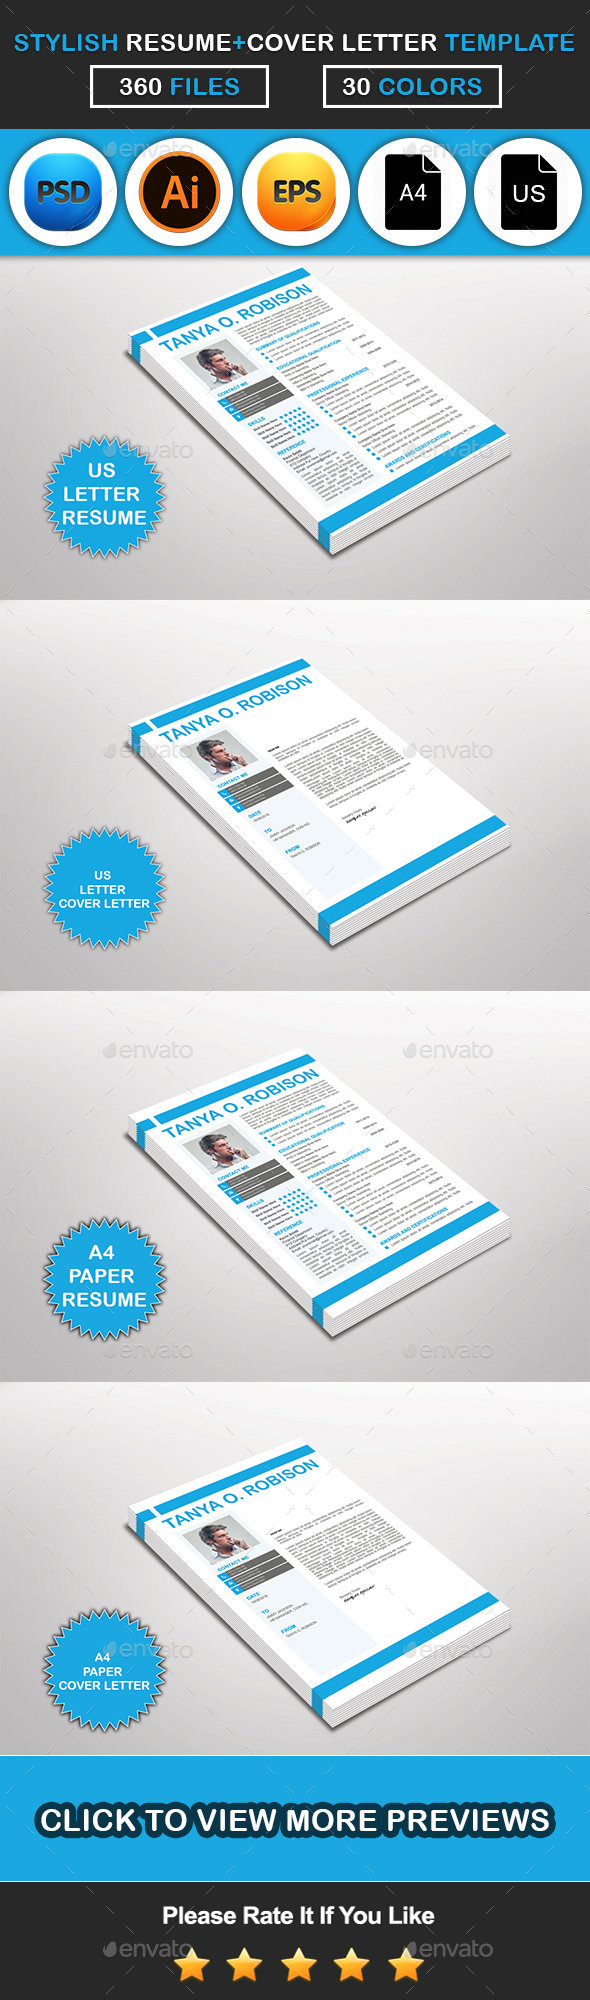 Stylish Resume & Cover Letter Template Design